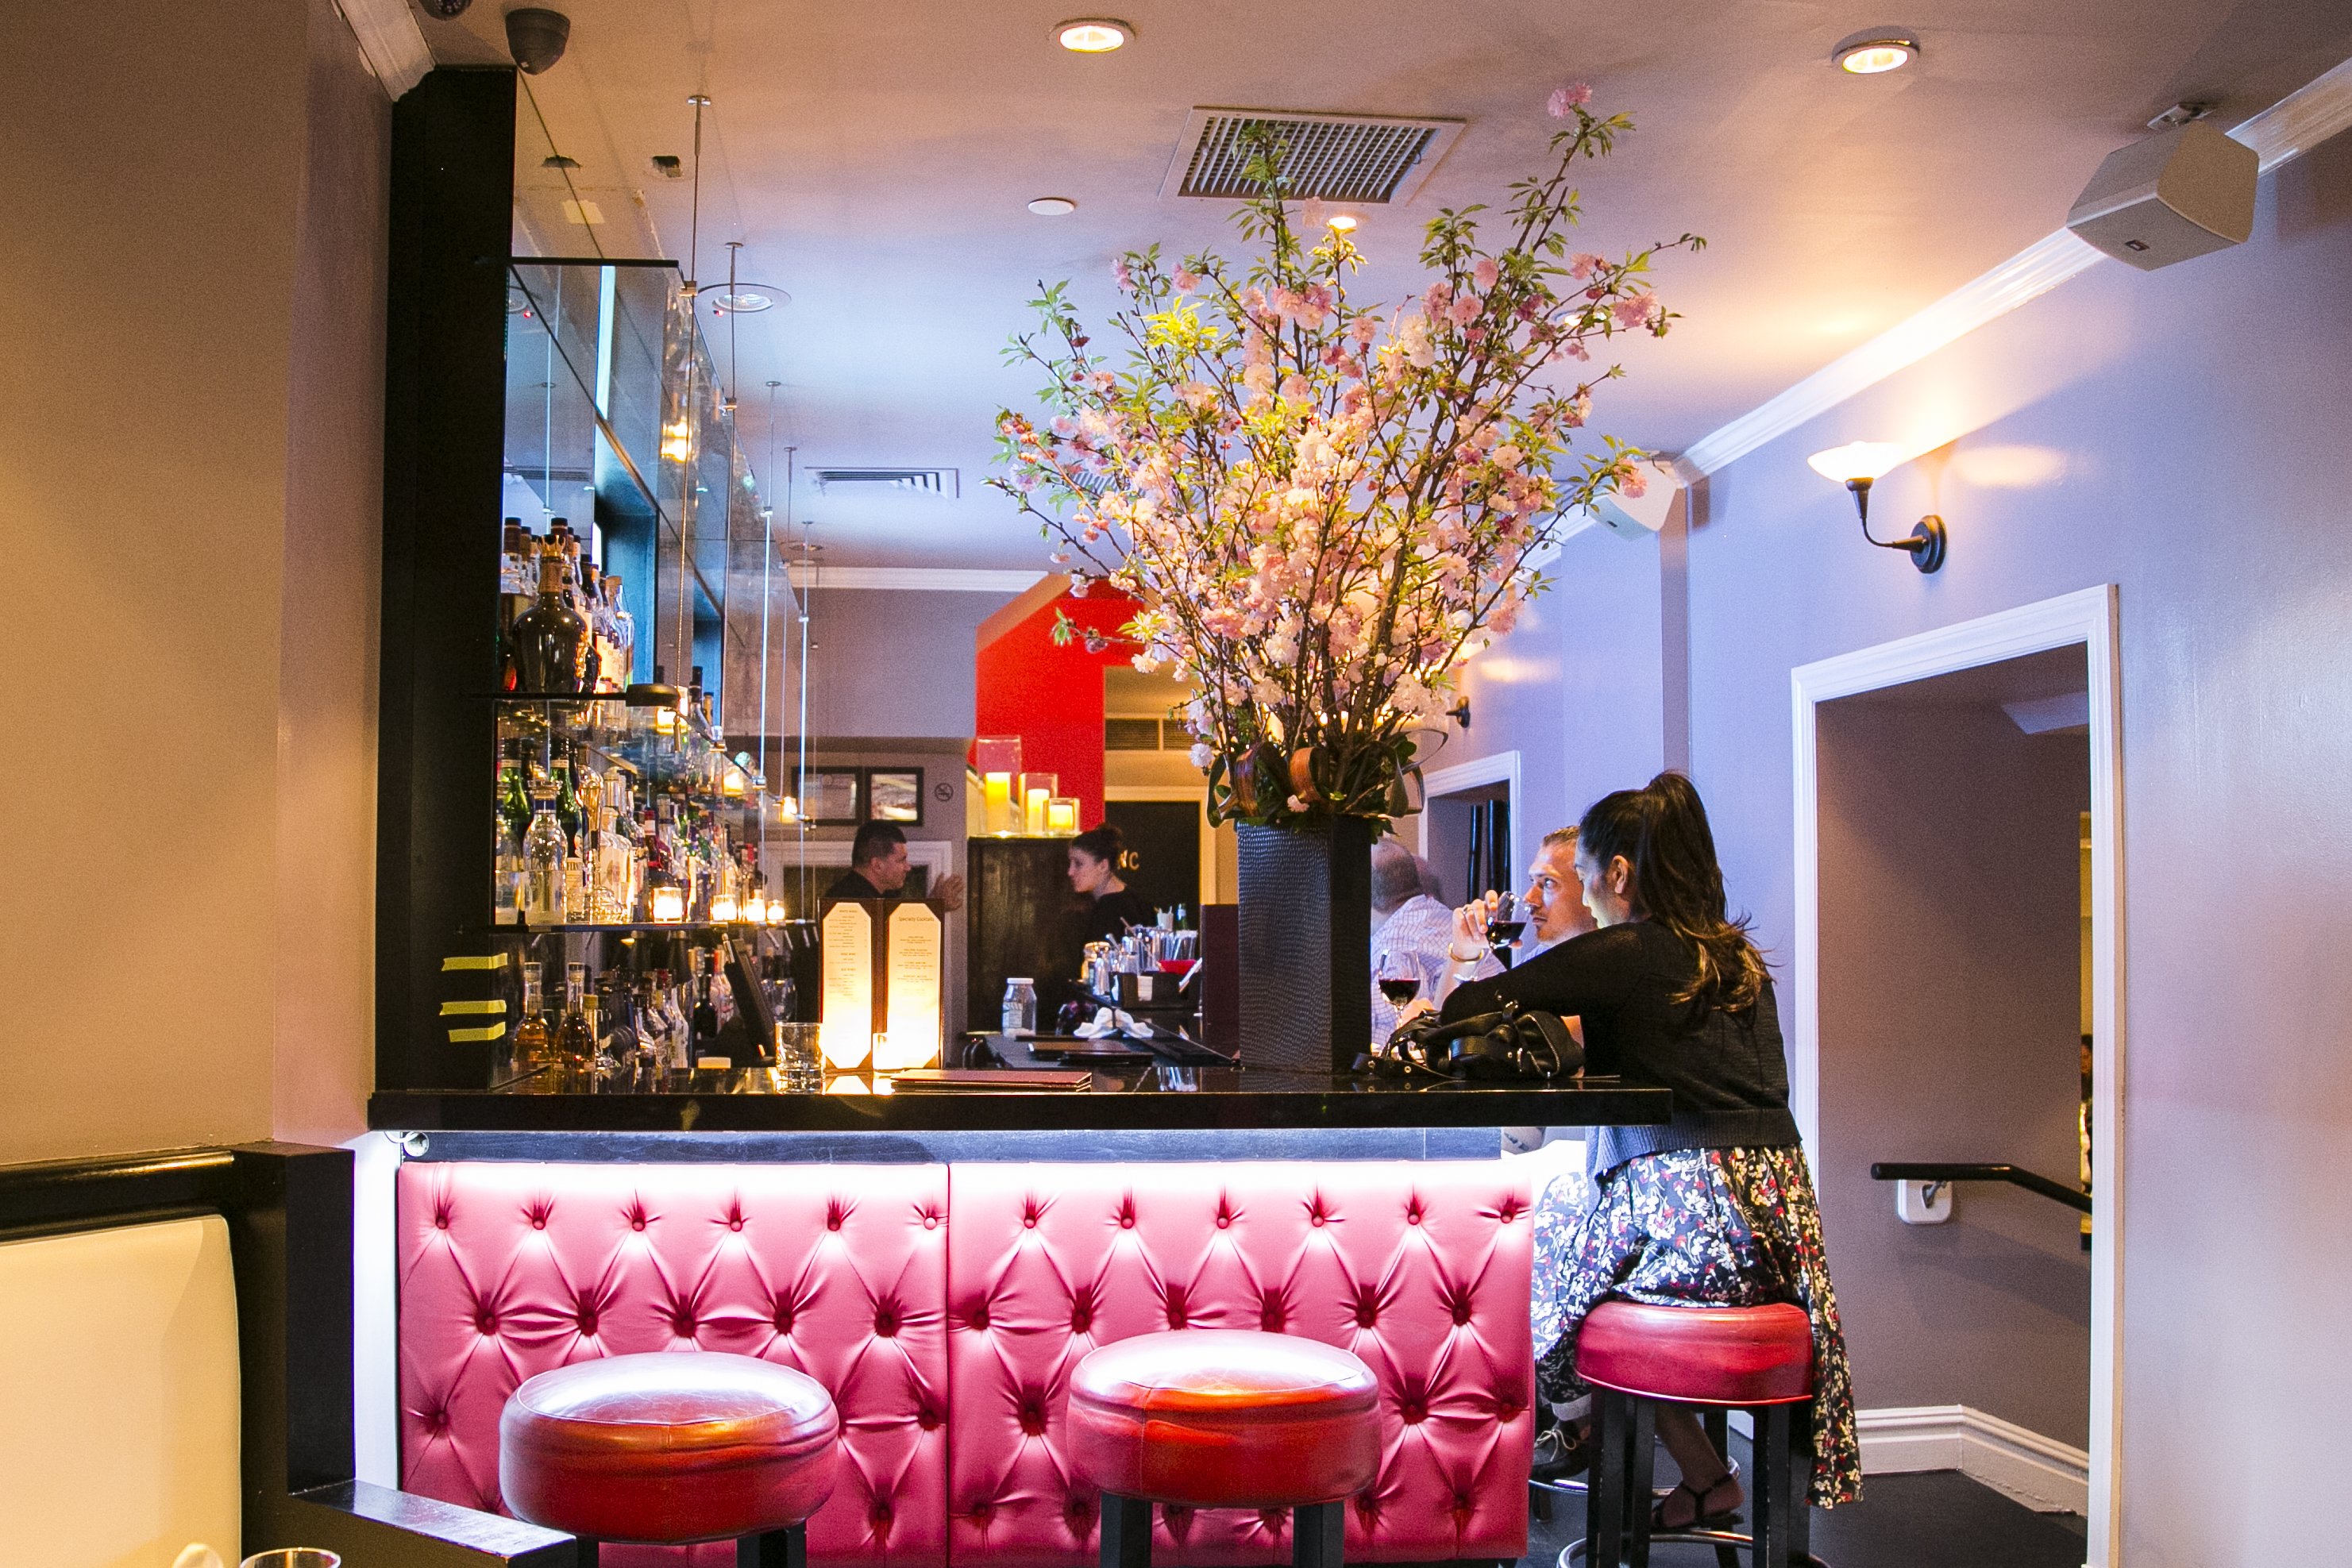 The restaurant's stylish front bar. (Samira Bouaou/Epoch Times)